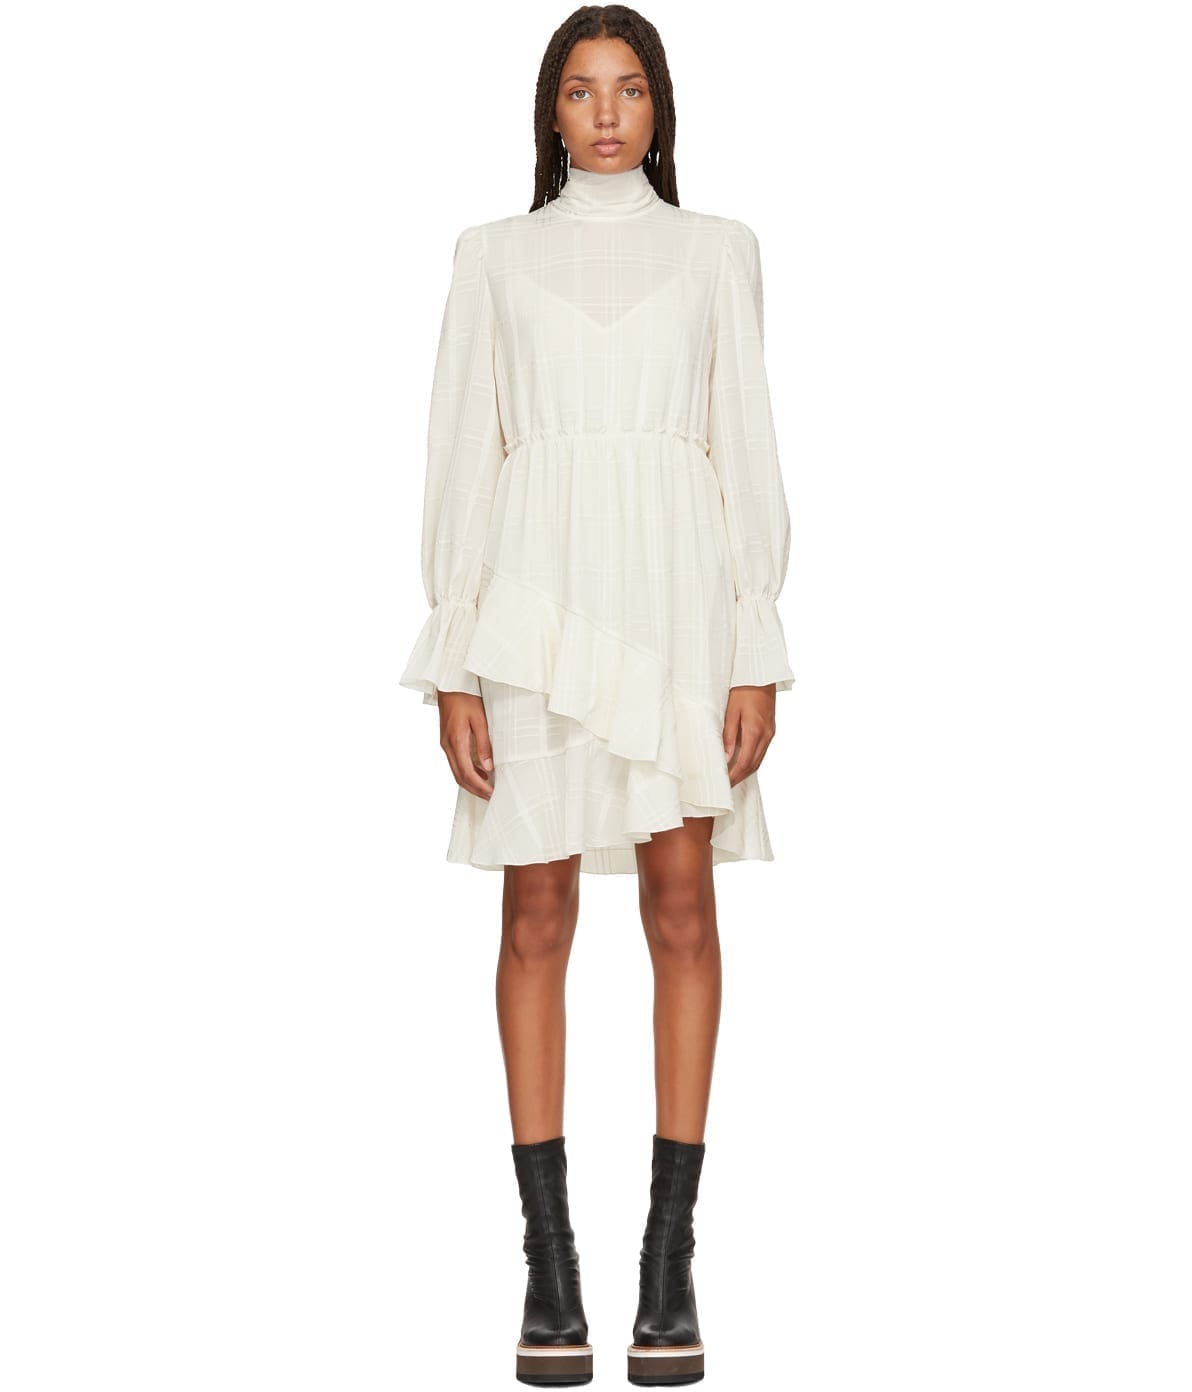 381d1a2131 CHLOÉ Layered High-Neck White Dress - We Select Dresses